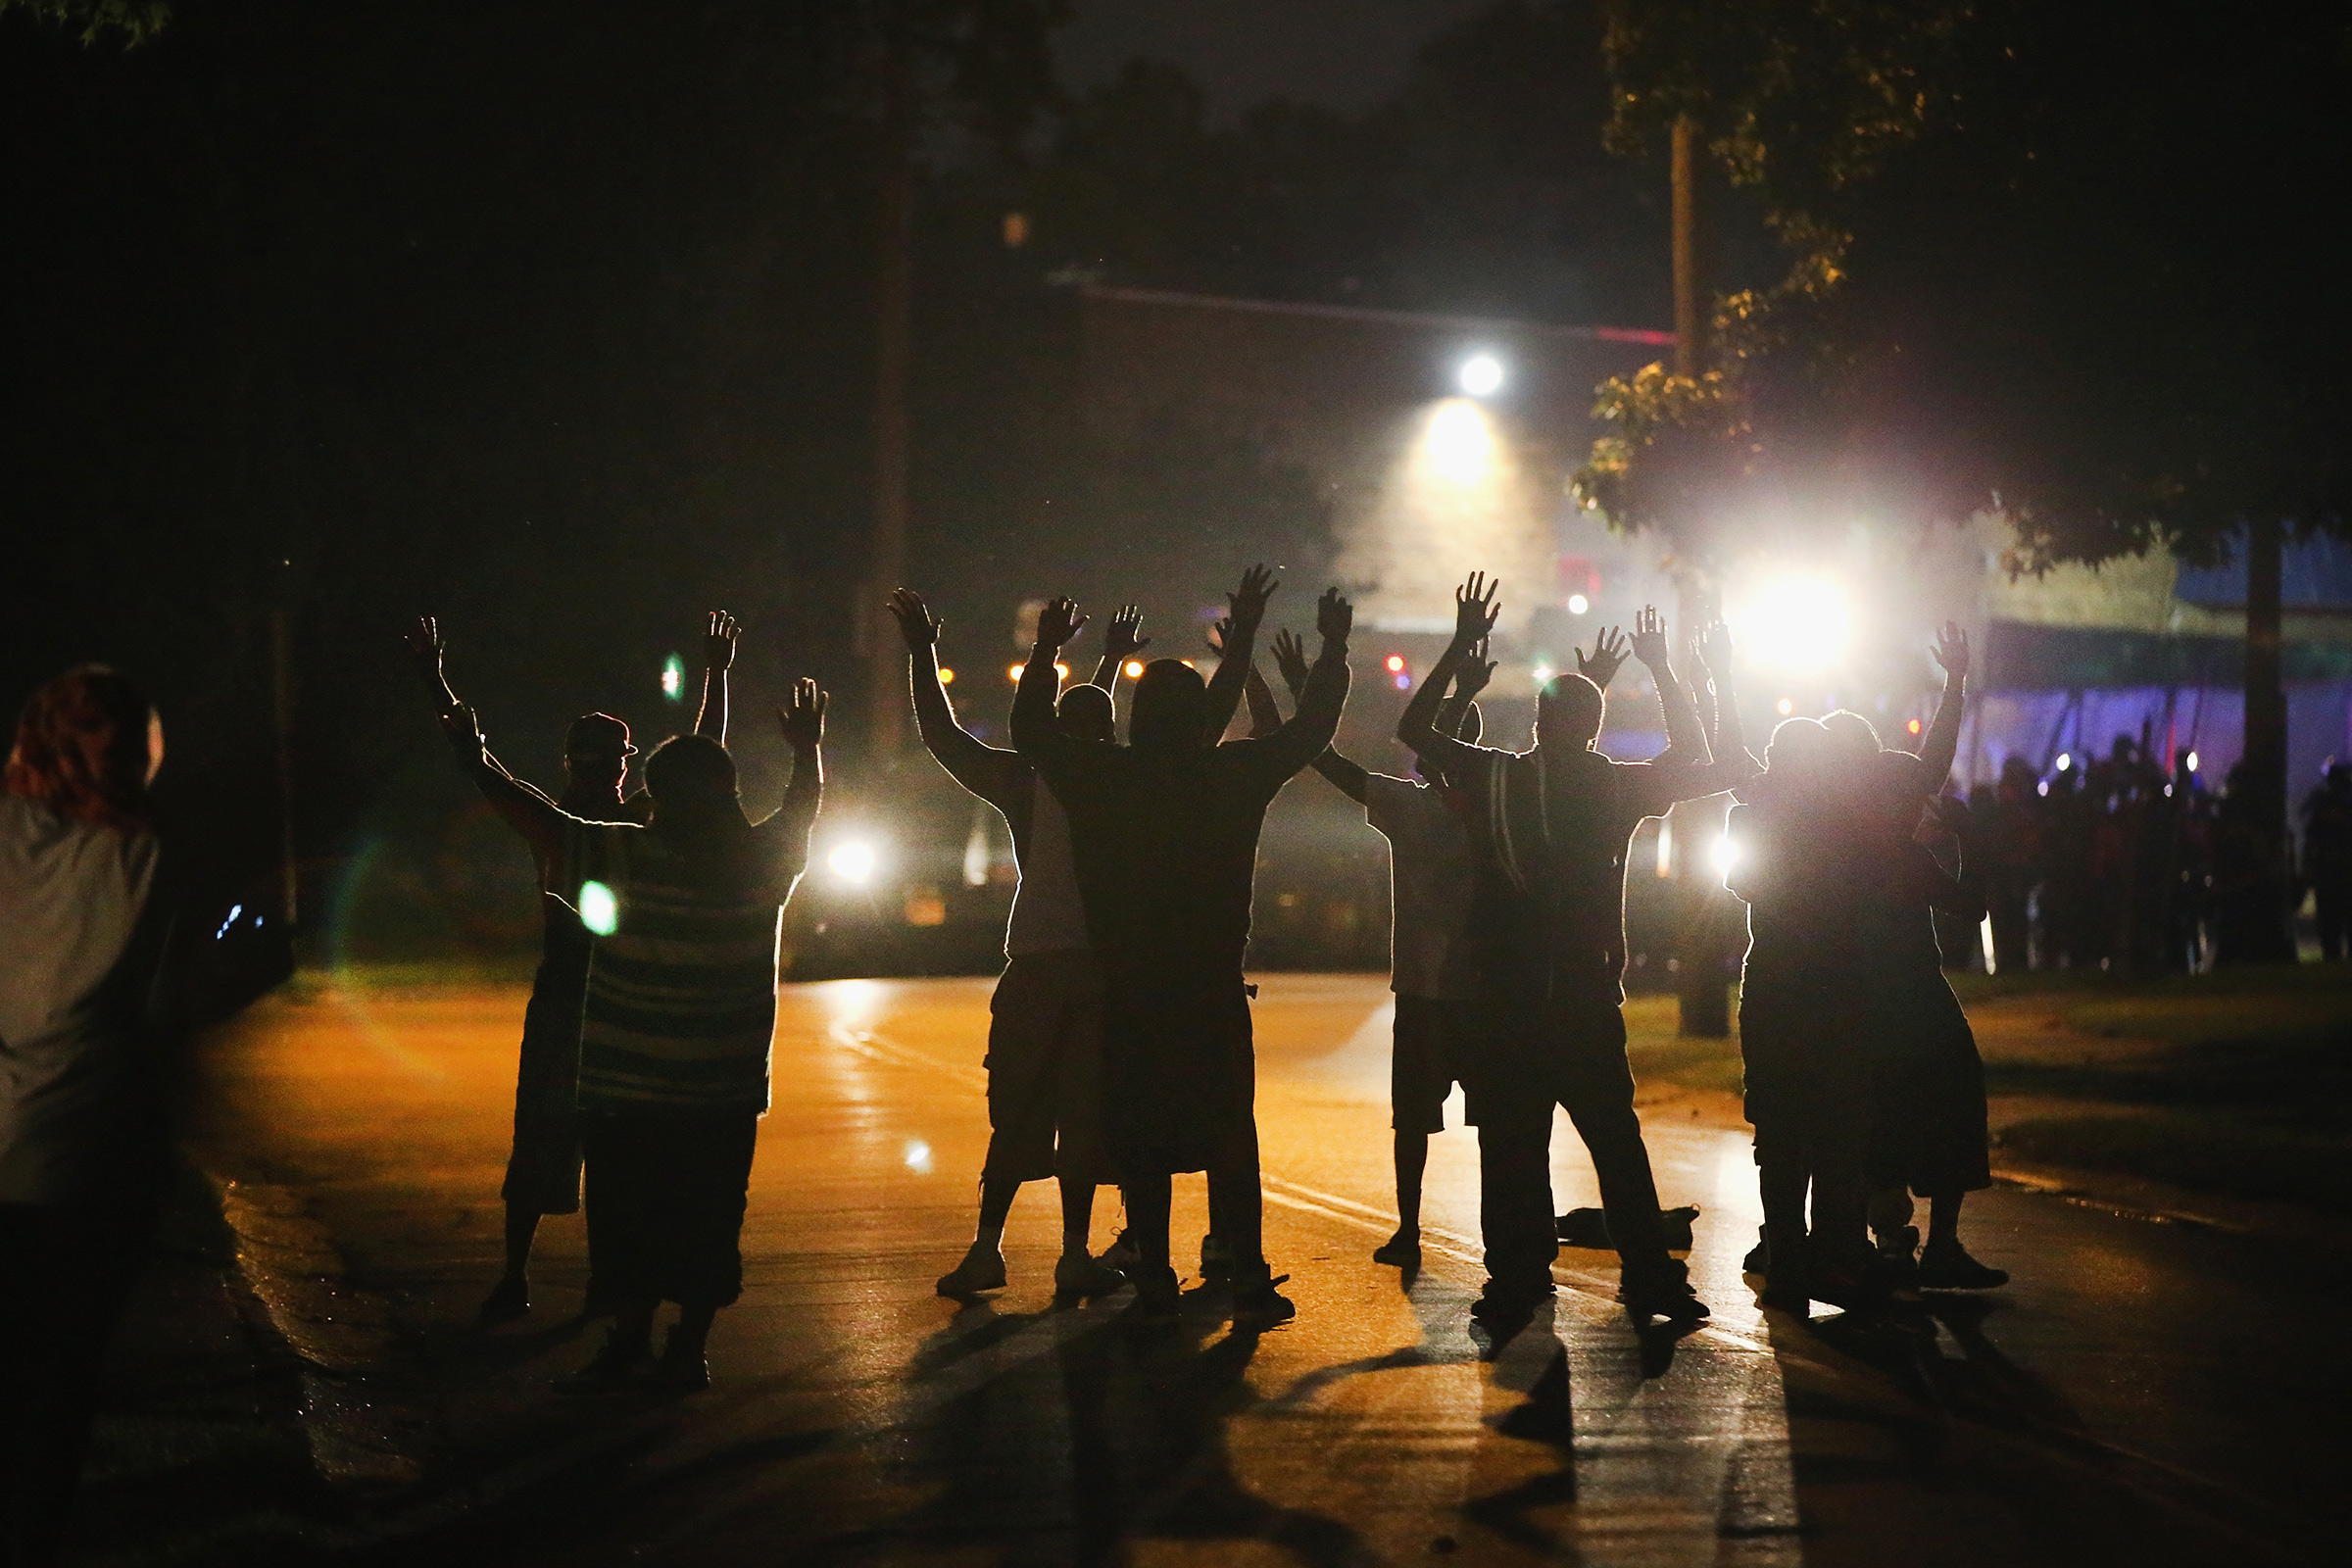 Police lock down a neighborhood in Ferguson amid protests in August 2014.